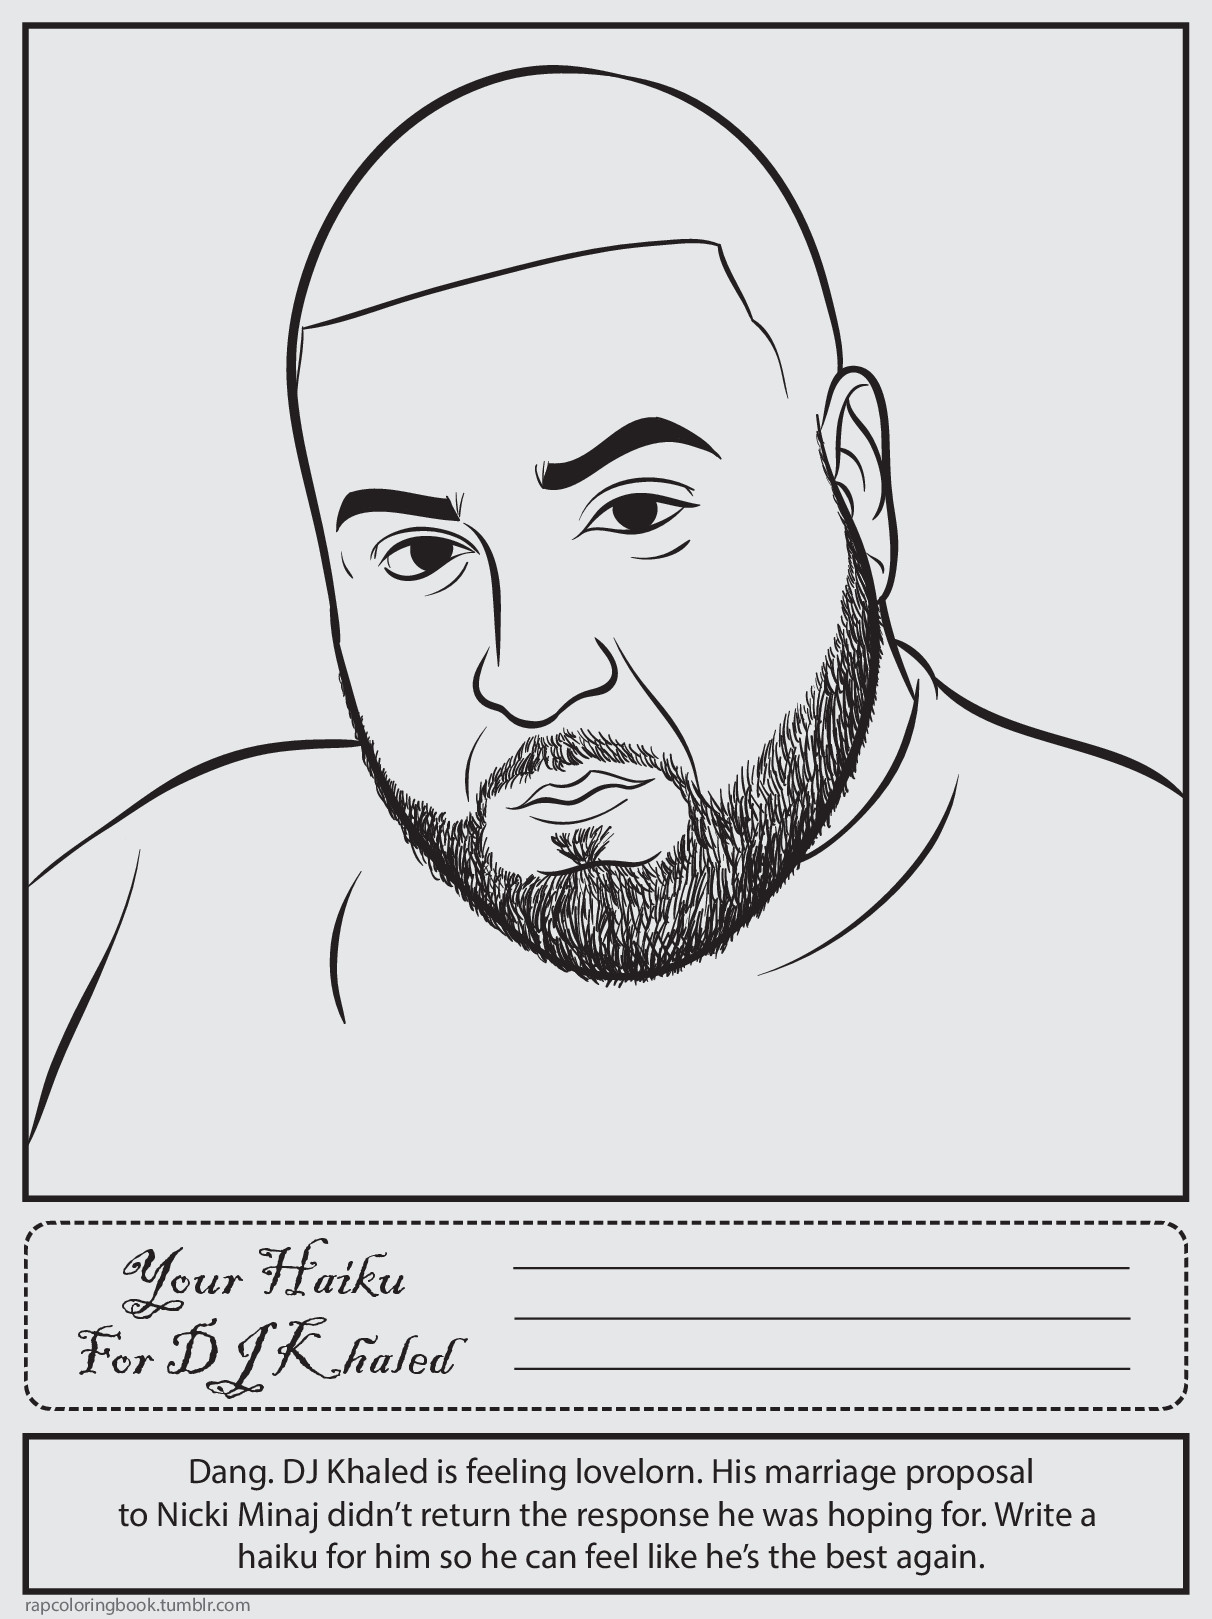 dj khaled bun b rap coloring book - Rap Coloring Book